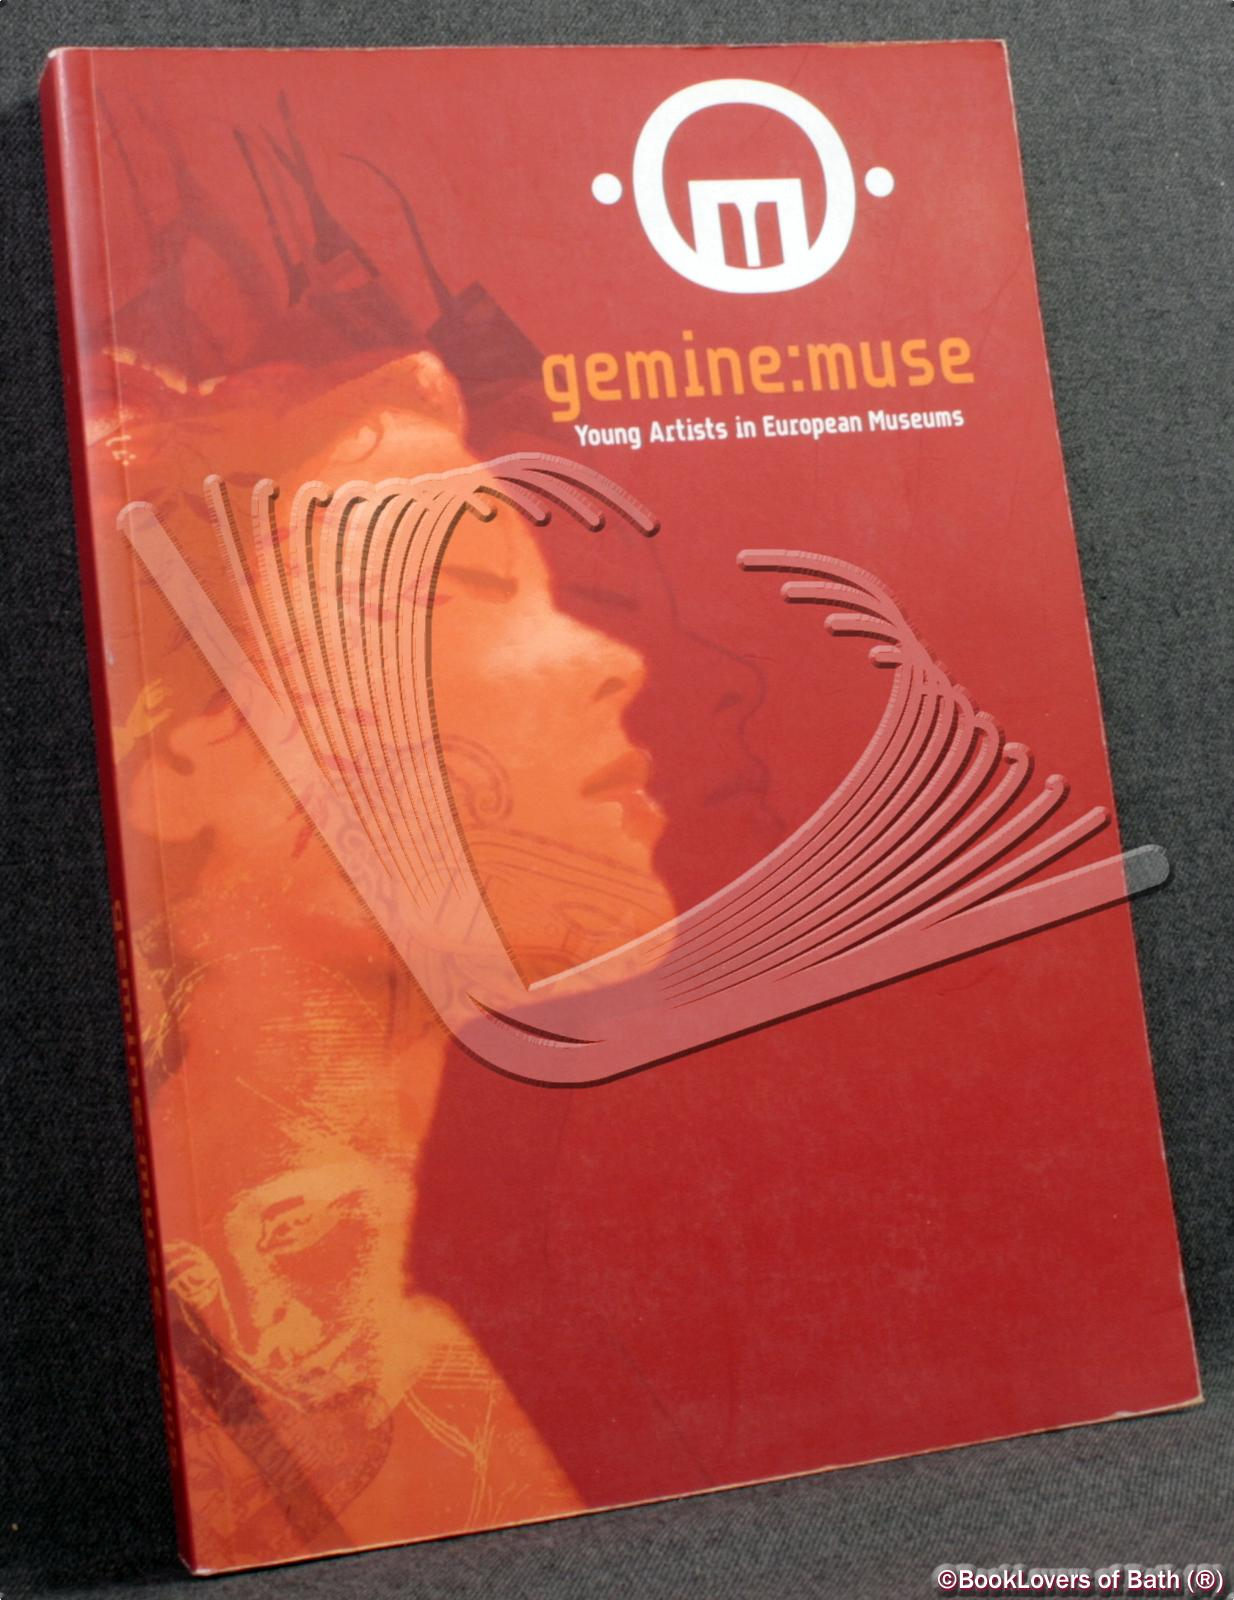 Gemine: Muse: Young Artists in European Museums November 2005 - February 2006 - Fiorenzo Alfieri